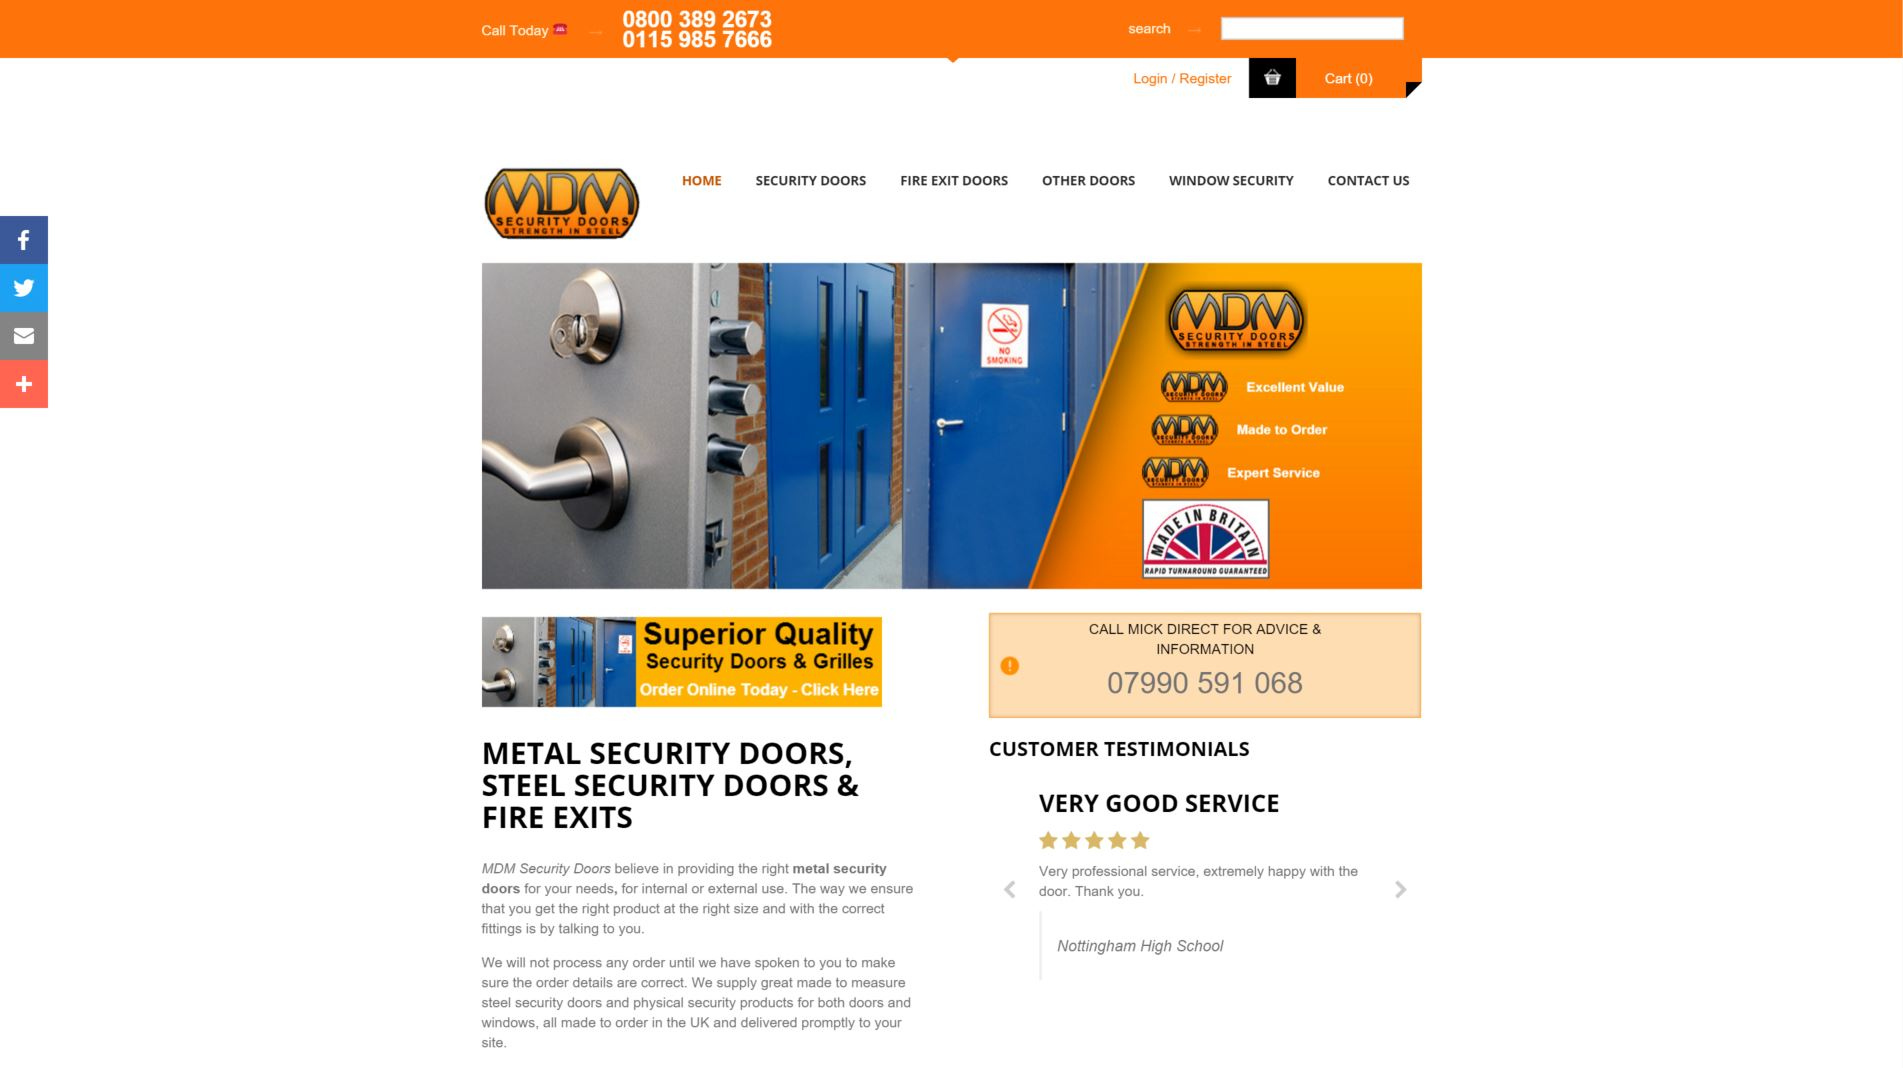 Case Study - MDM Security Doors